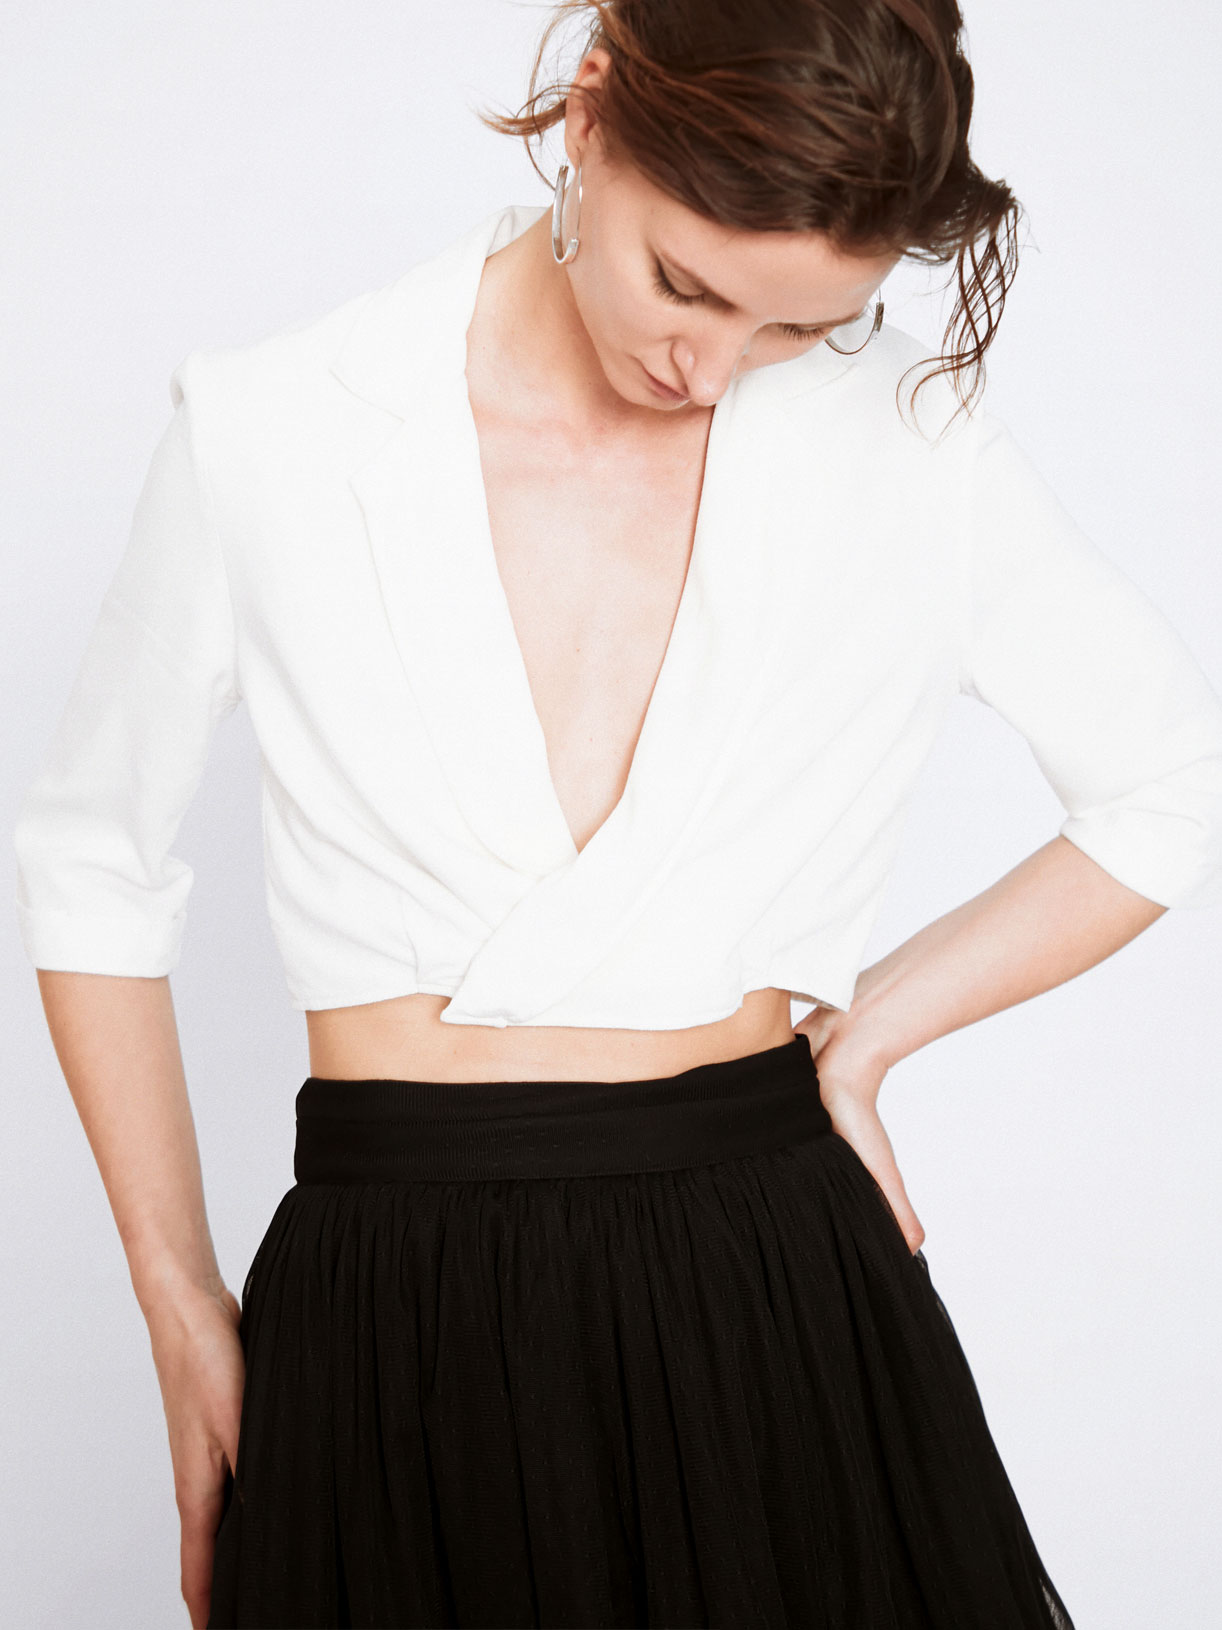 Crop top smocking blanc createur écoresponsable - Creatrice de mode éthique et bio a Paris - Myphilosophy